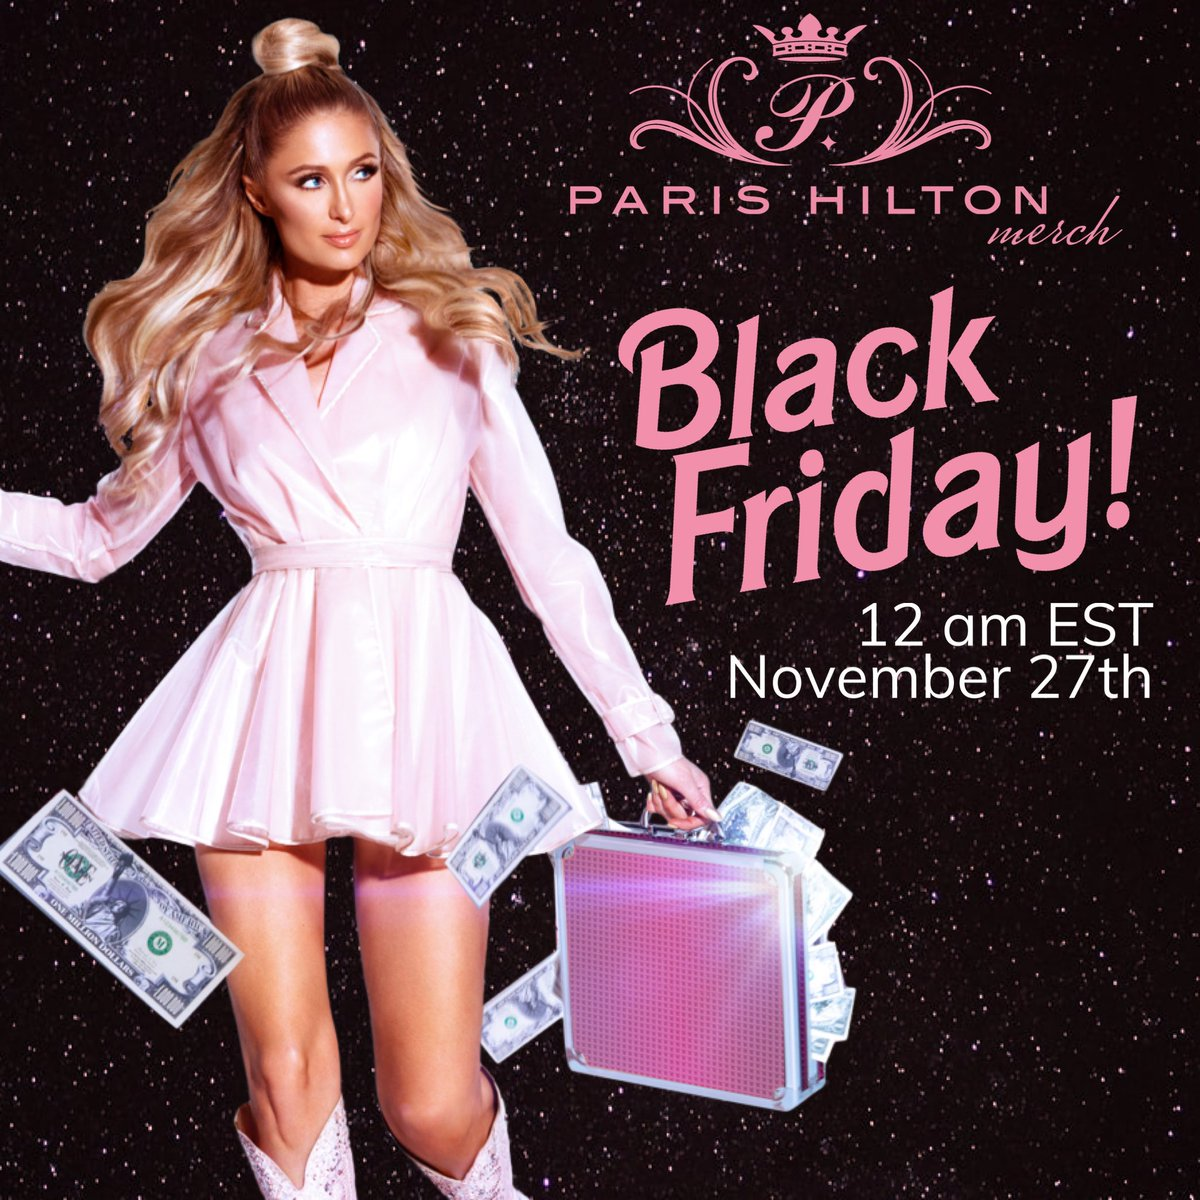 My Black Friday Mystery Pack is available now at !💕 These items are exclusive to this #BlackFriday Special and can only be purchased in the mystery pack from now until 12 AM PST 11/28. Get yours today 💖 #ParisHiltonMerch